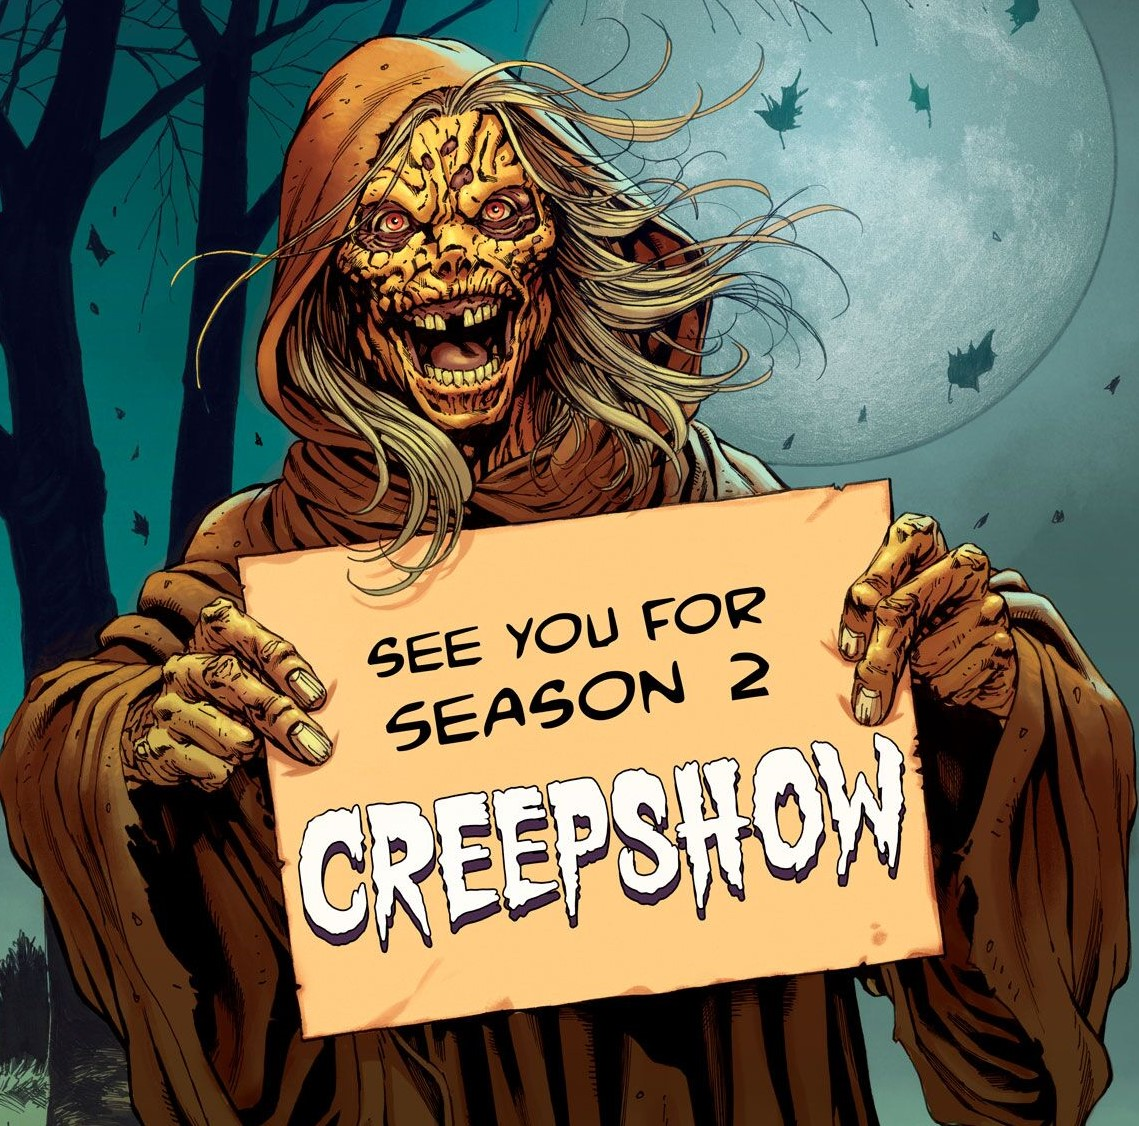 [News] Shudder Renews Second Season of CREEPSHOW